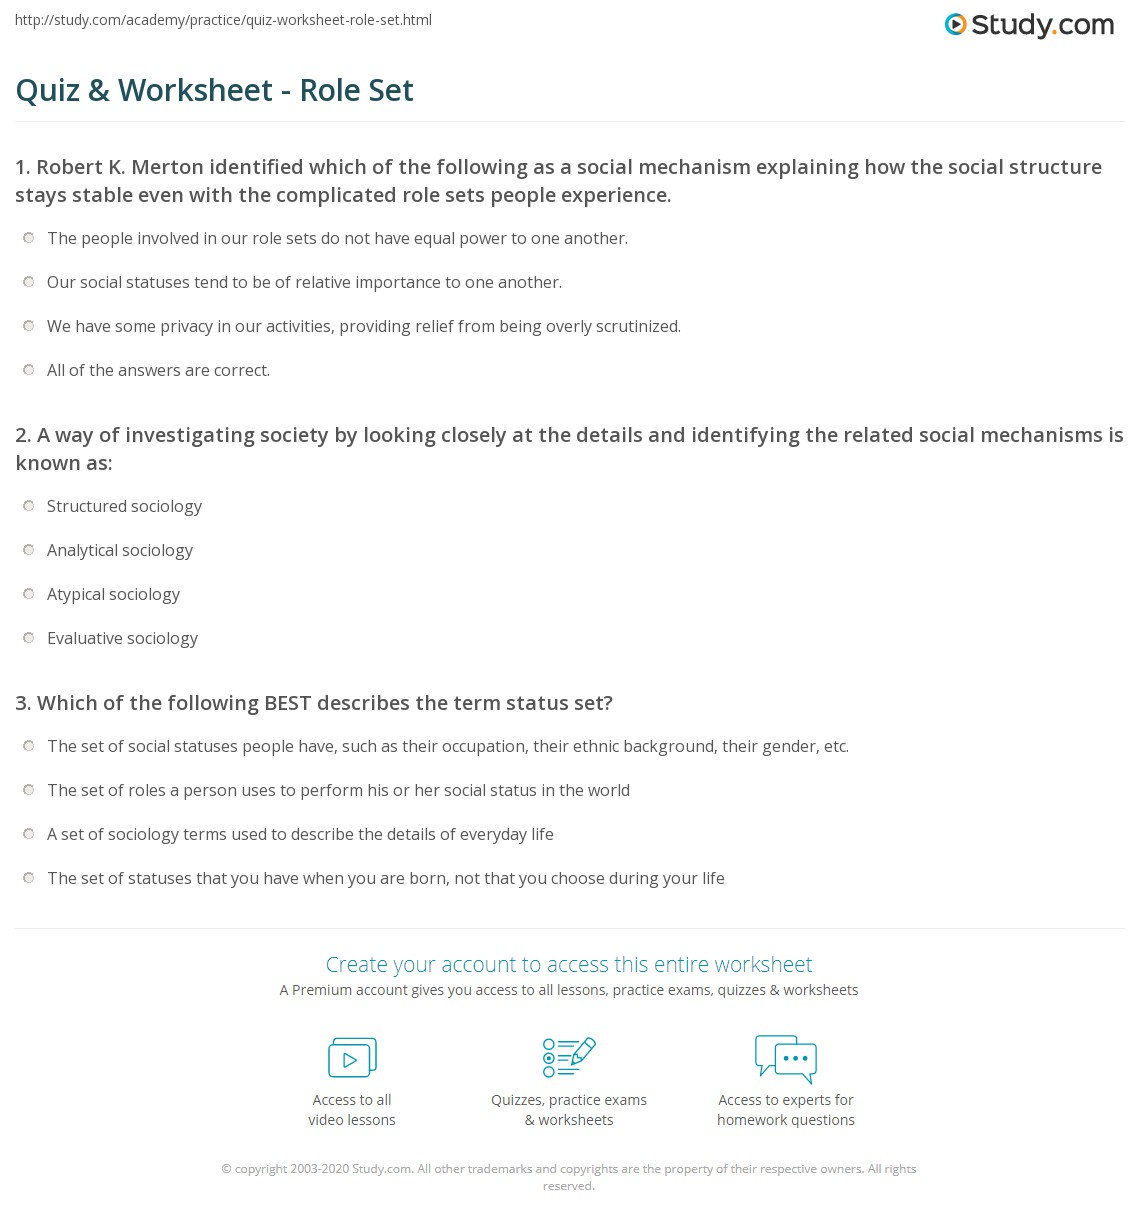 quiz worksheet role set. Black Bedroom Furniture Sets. Home Design Ideas